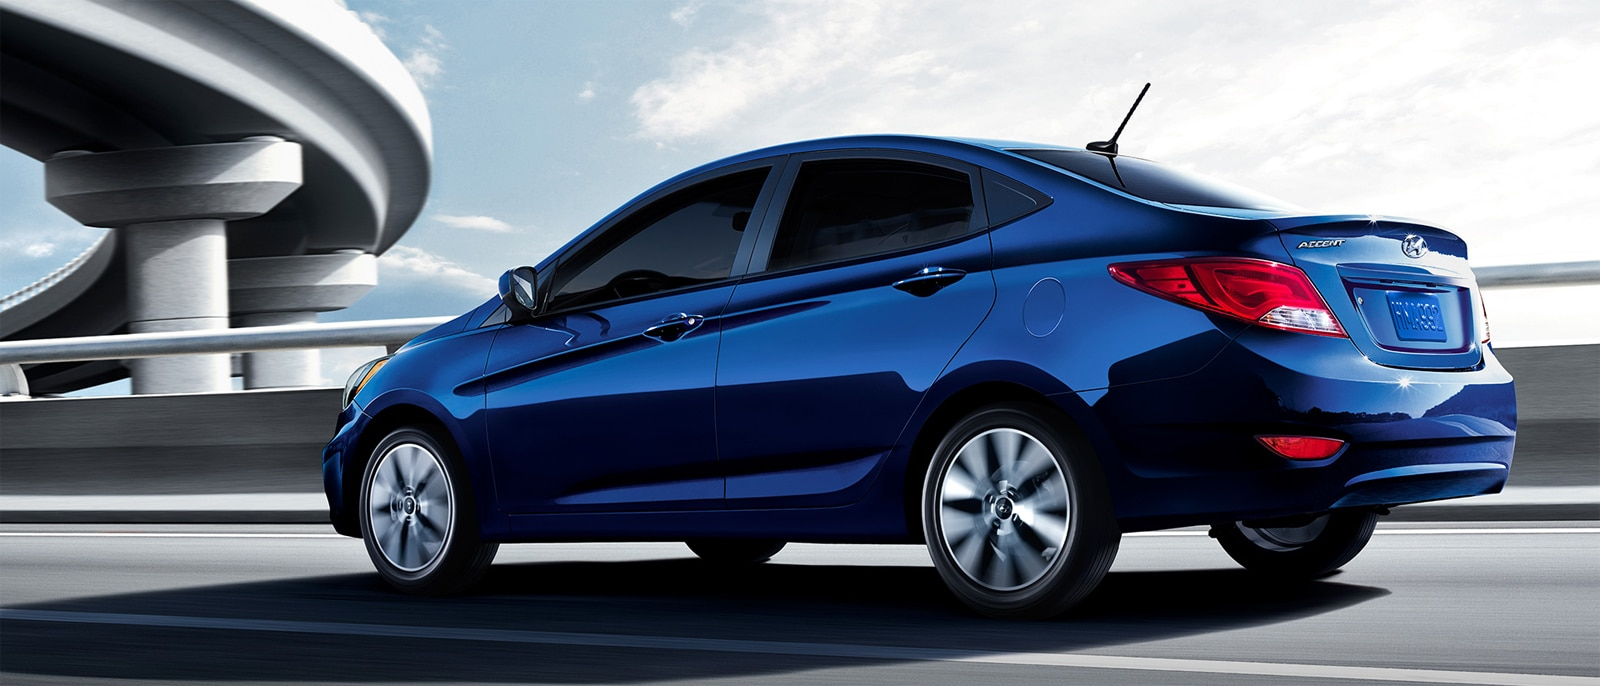 Hyundai Accent Mpg >> Find Efficiency In The Hyundai Accent Fuel Economy